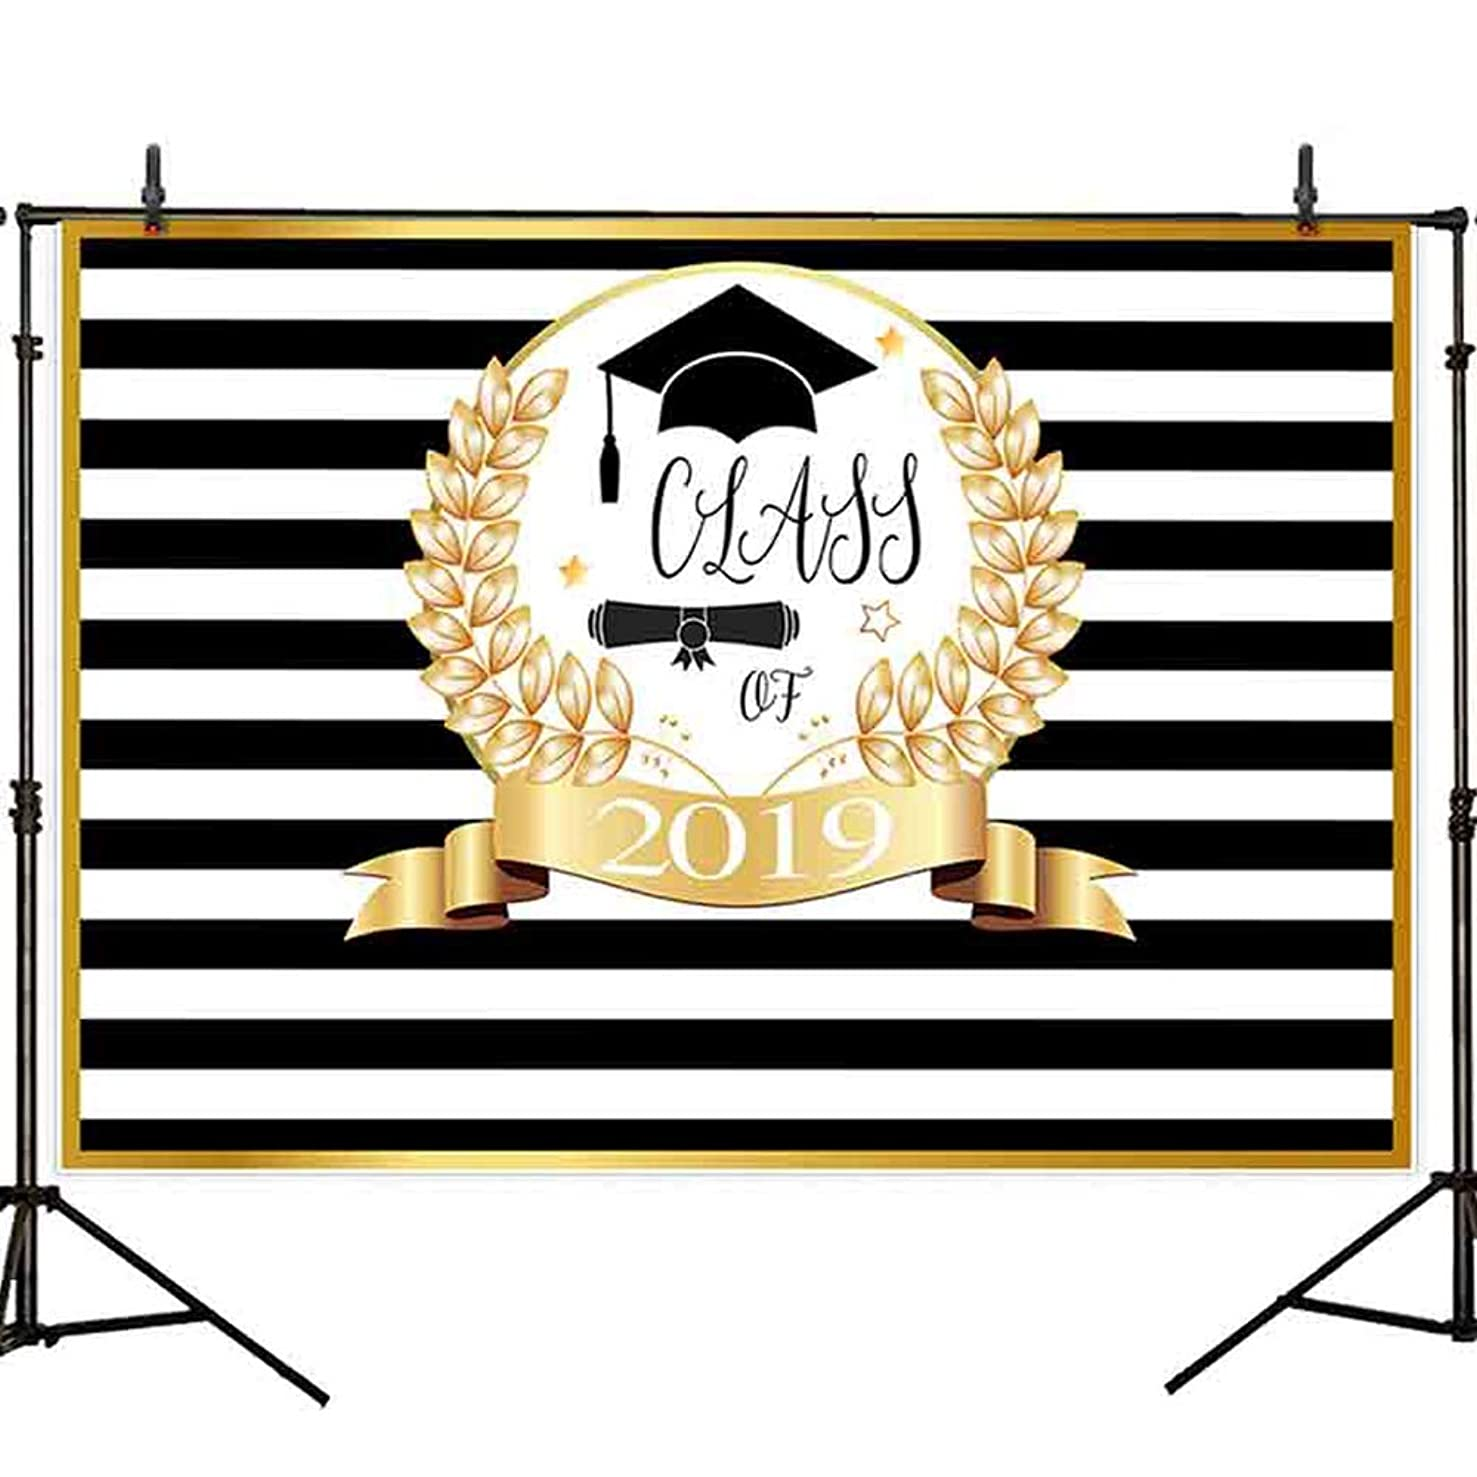 Allenjoy 8x6ft Durable Fabric Golden Prom Class of 2019 Photography Backdrop Background Black and White Stripes Golden Ivy Photograph for Graduation Party Decorations Cake Table Banner